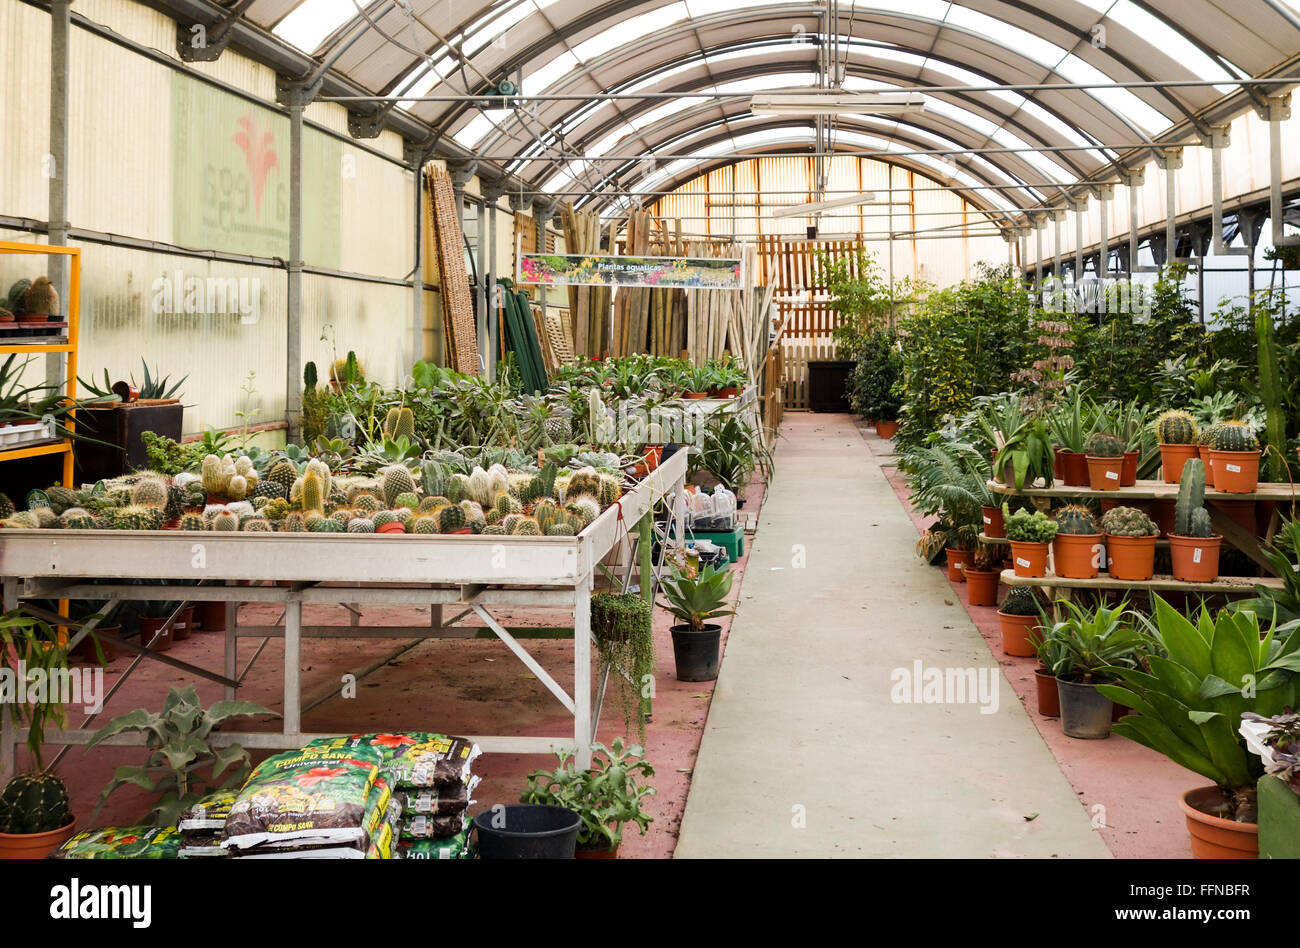 Greenhouse in Garden centre retail plant nursery offering plants Stock